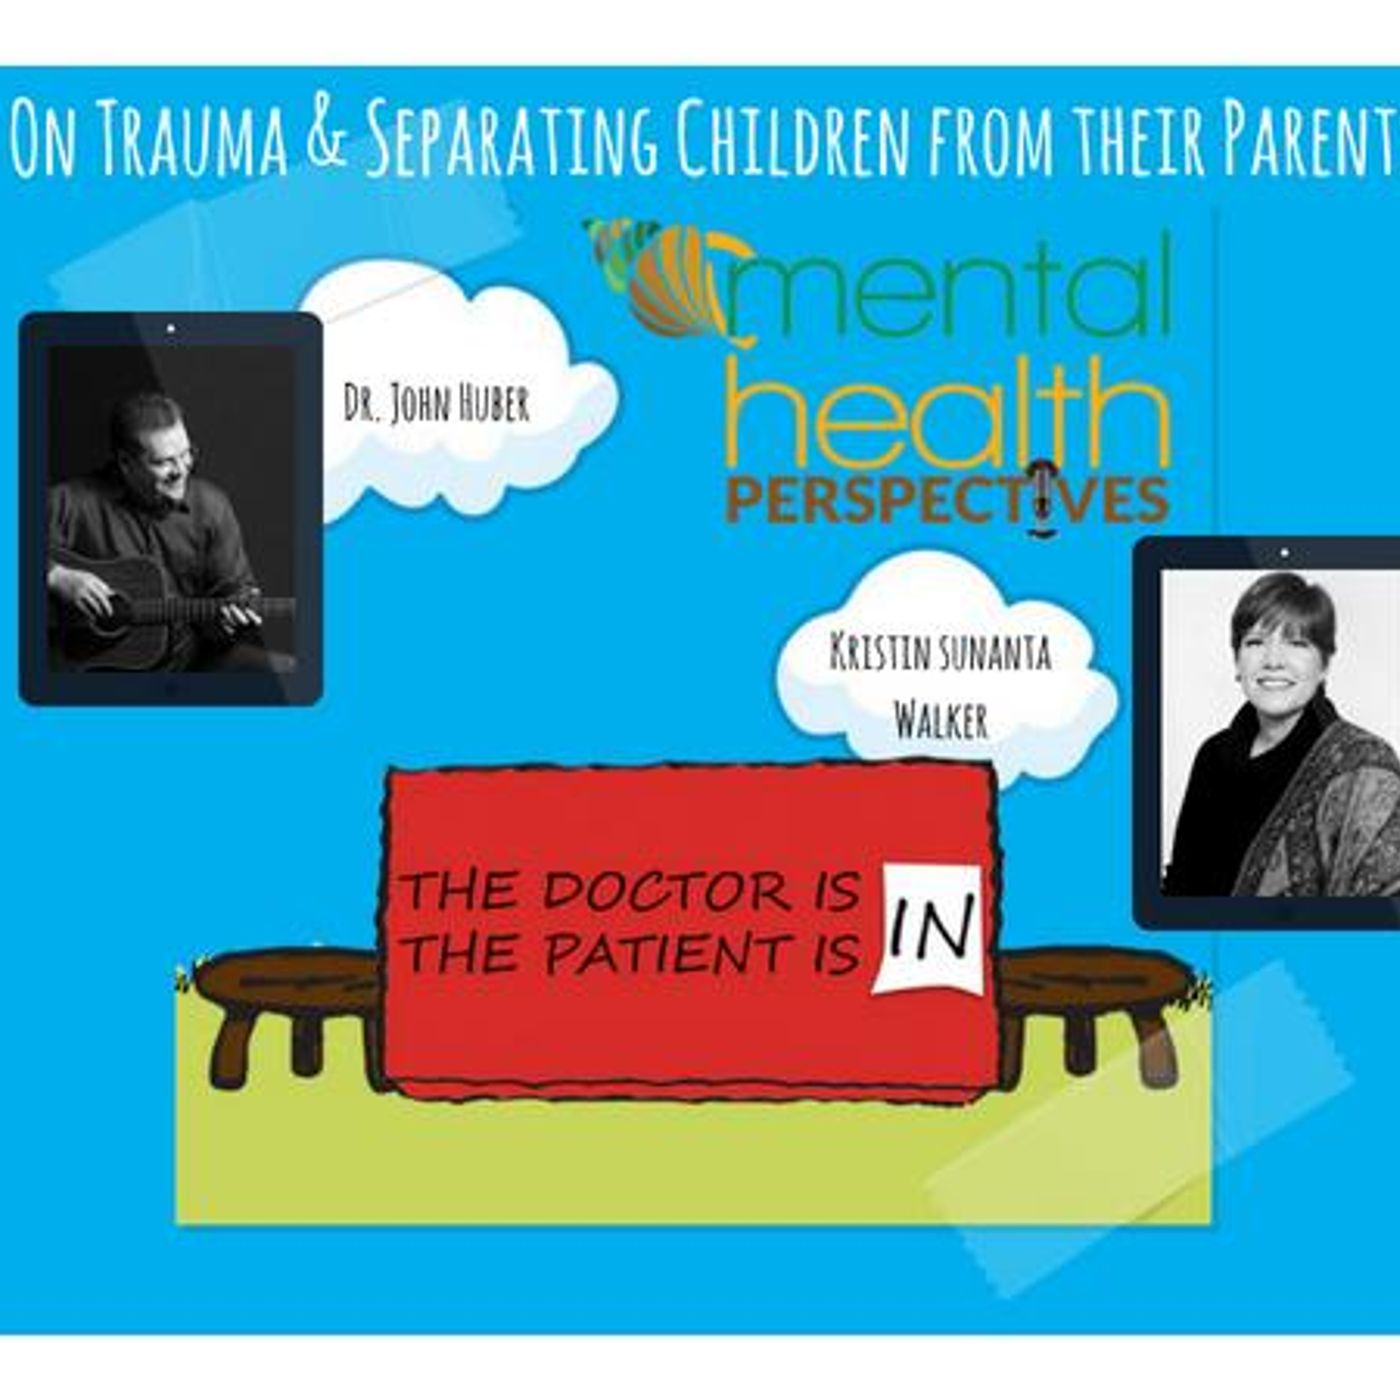 Mental Health News Radio - Mental Health Perspectives: Trauma from Separating Children & Parents